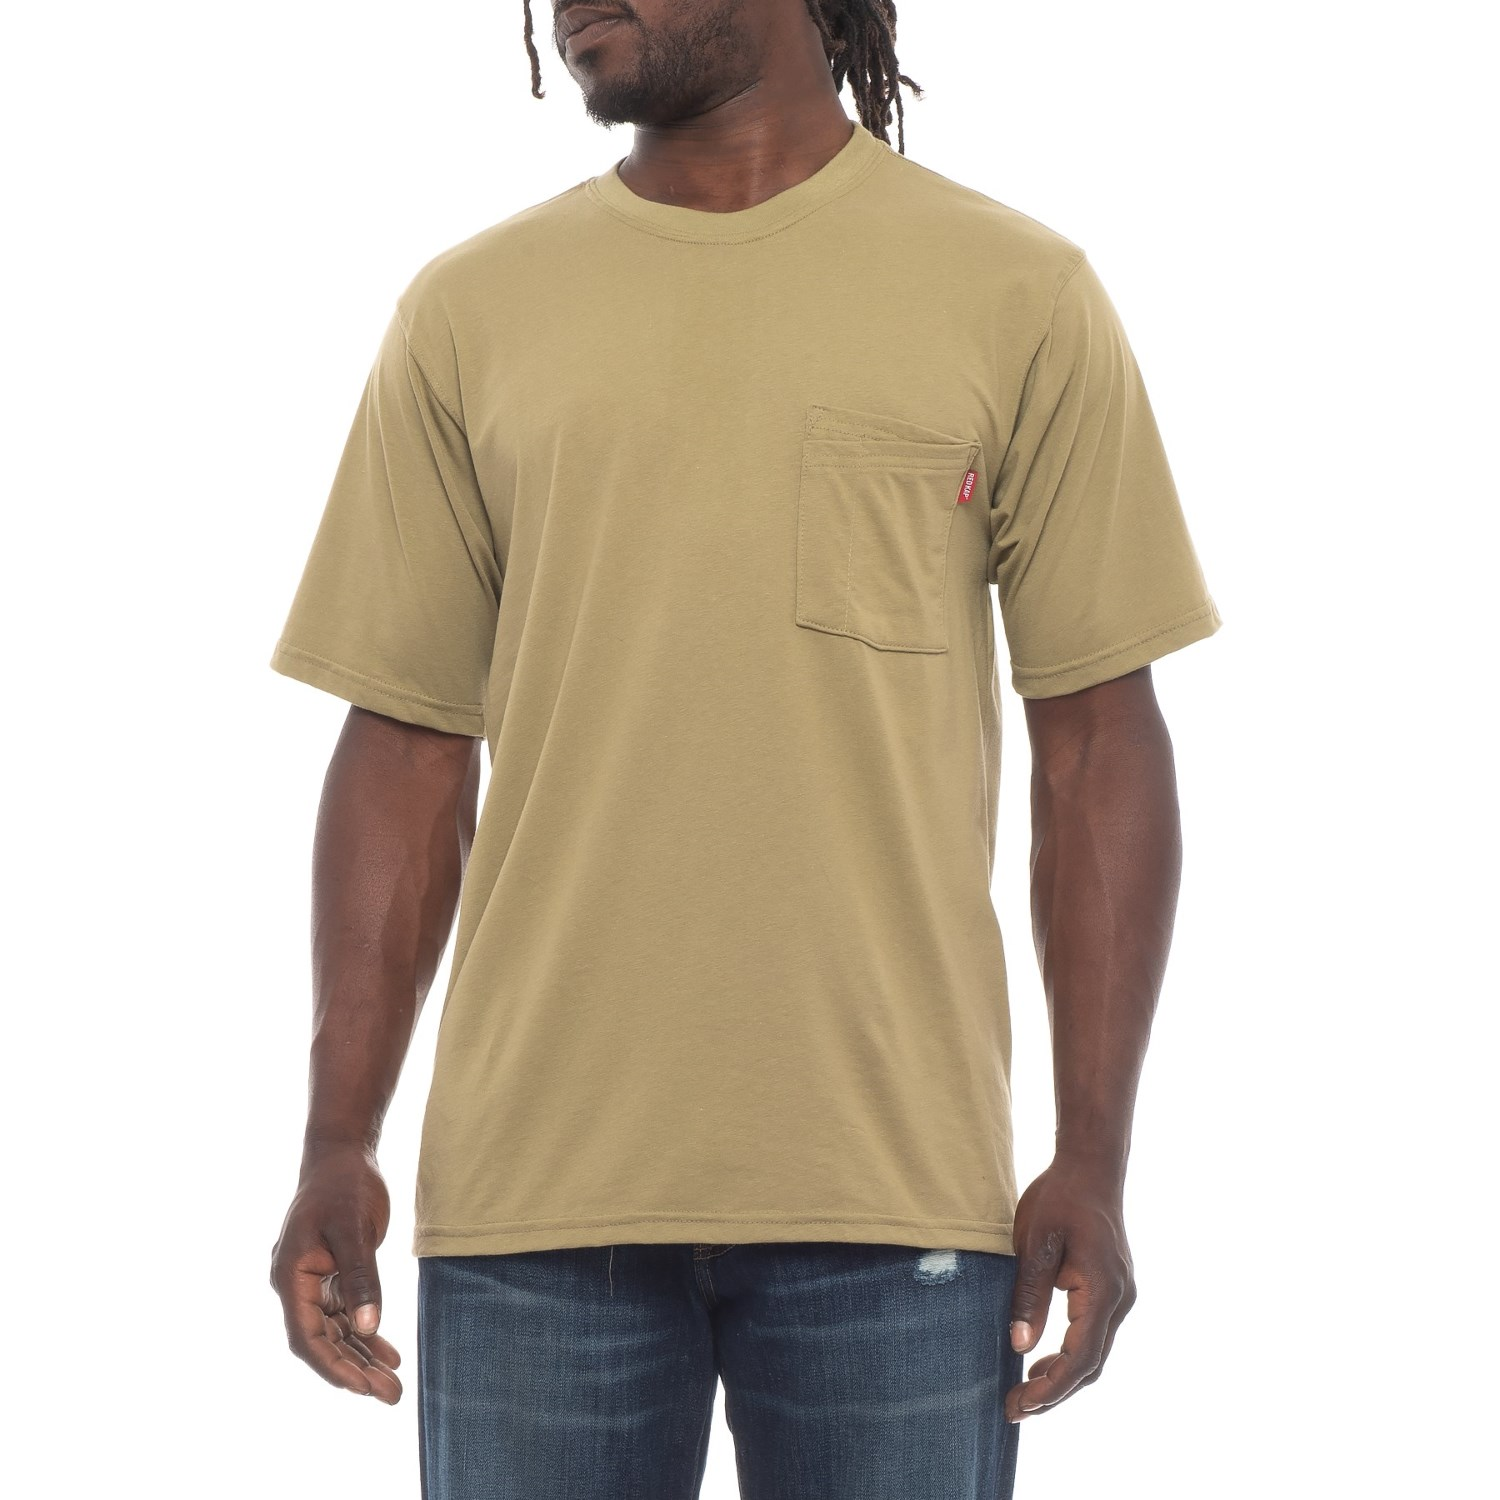 2dc9ccc66 Red Kap Solid Three-Way Pocket T-Shirt - Short Sleeve (For Men ...